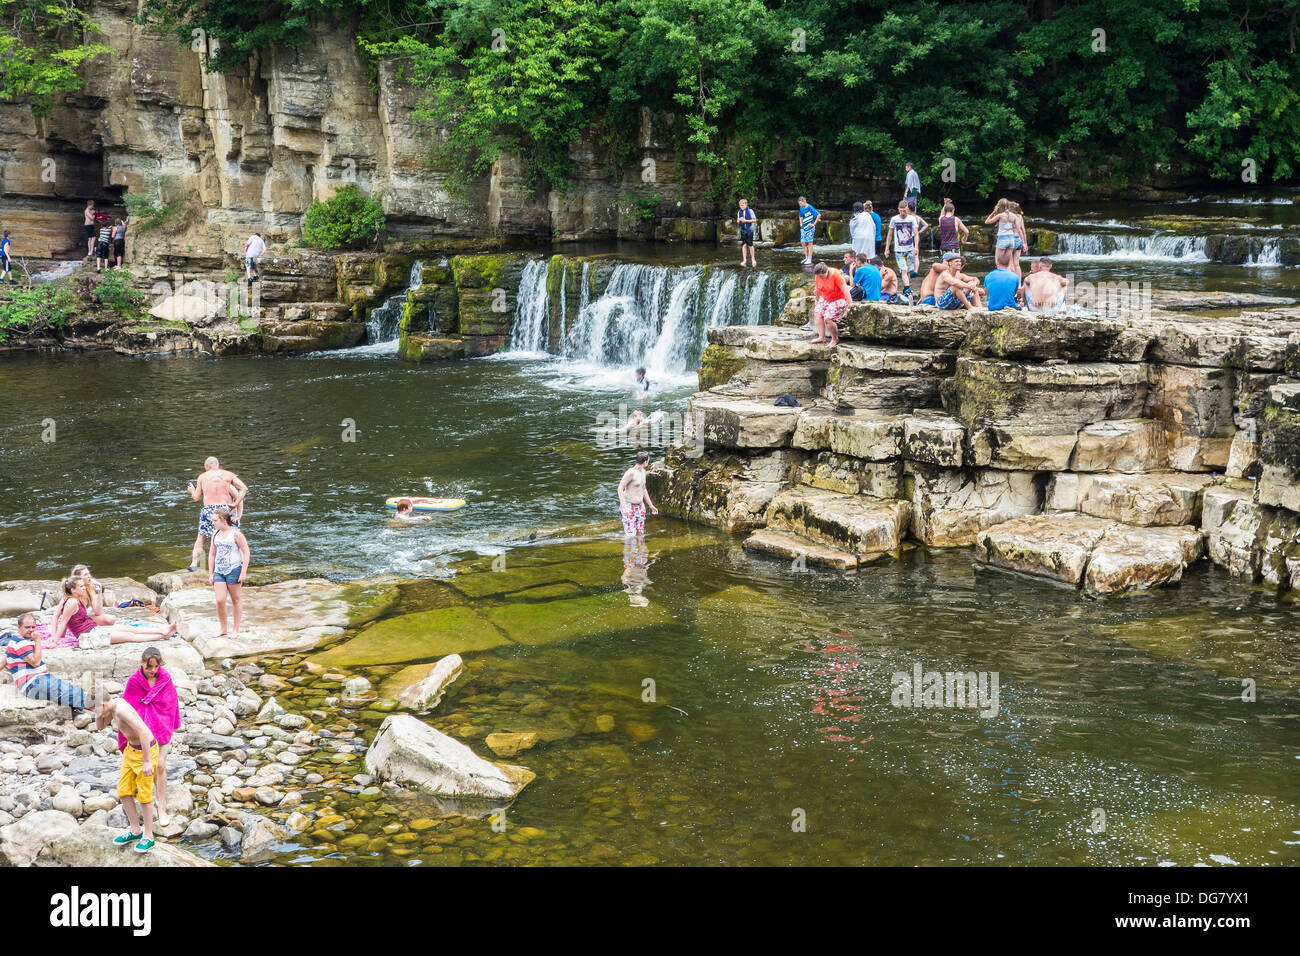 Summer swimming in the River Swale at Richmond, North Yorkshire Stock Photo